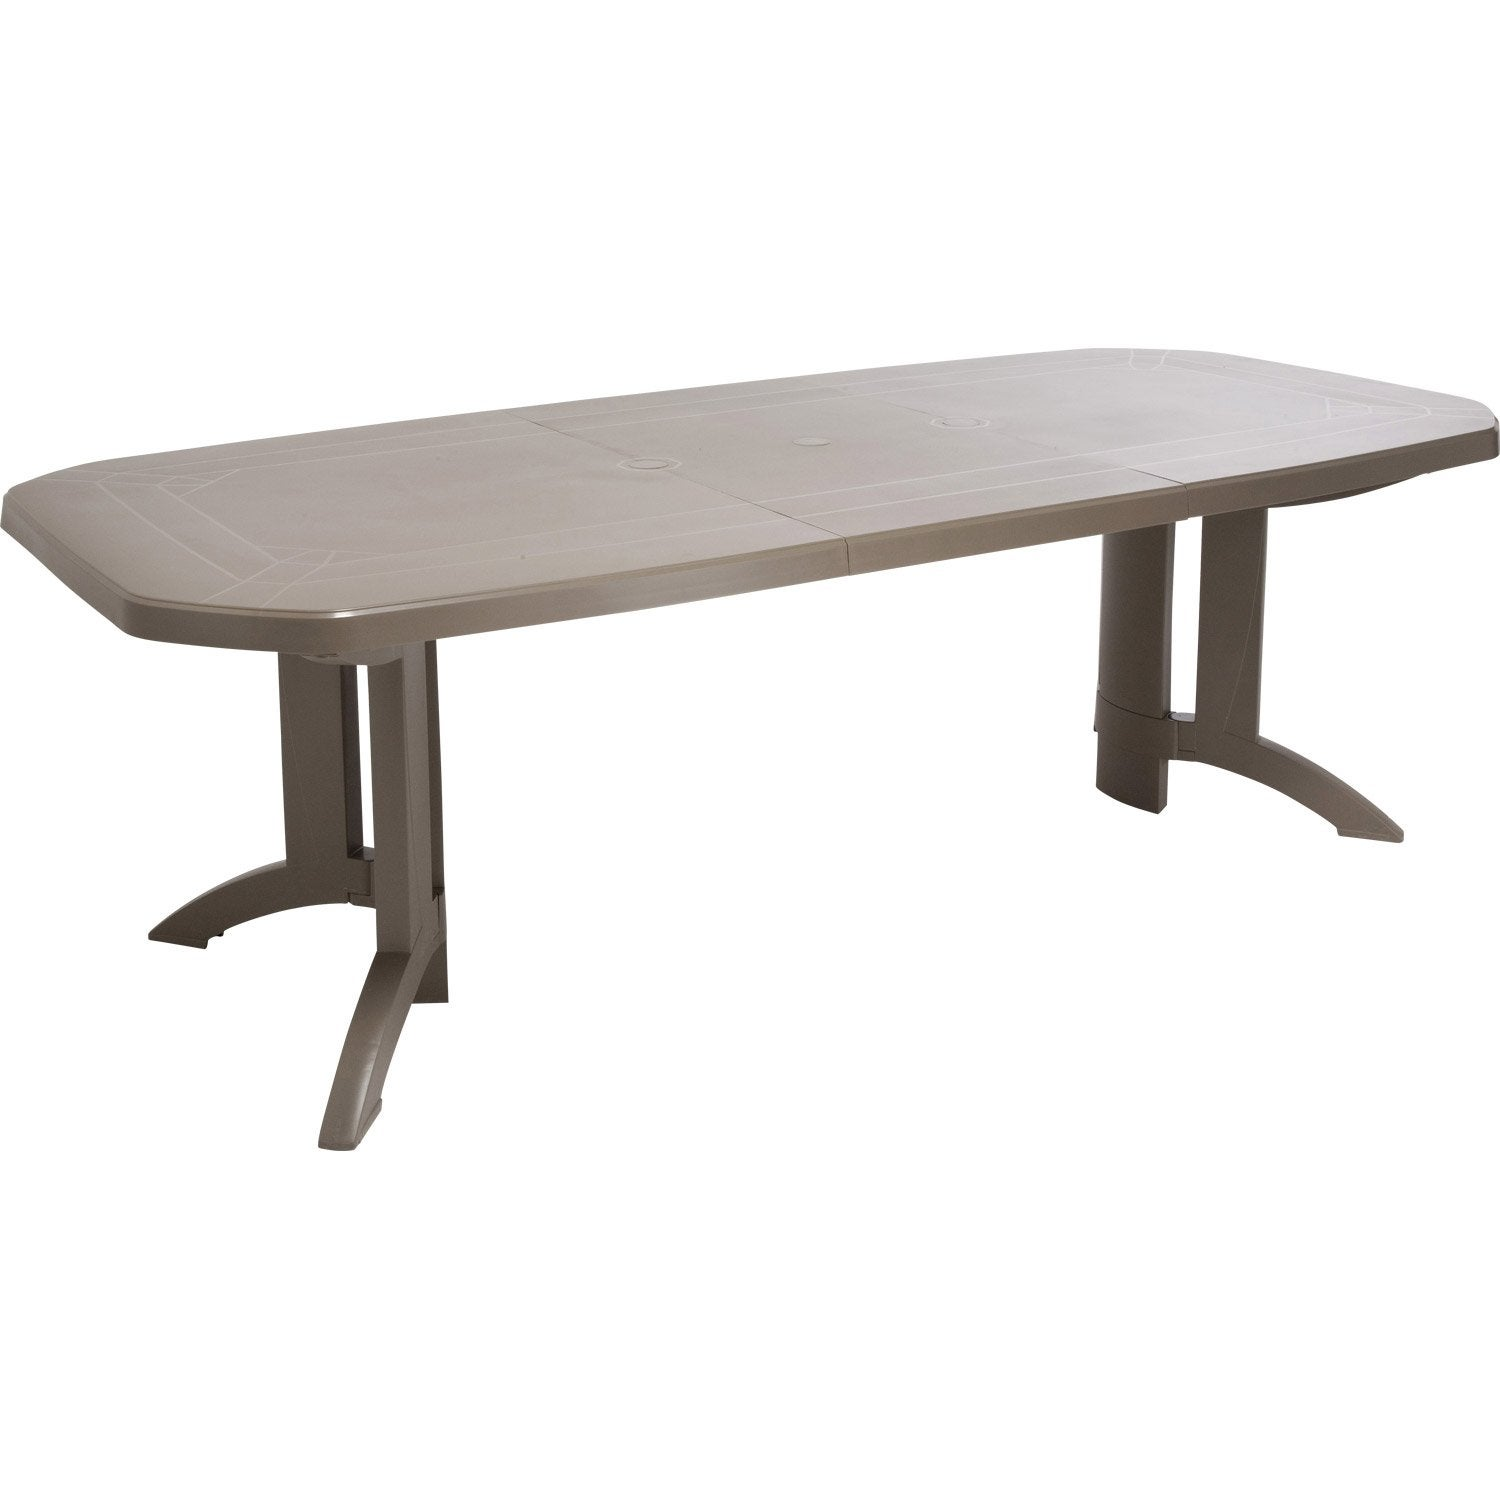 Table de jardin grosfillex v ga rectangulaire taupe 10 personnes leroy merlin - Table de jardin rallonge ...